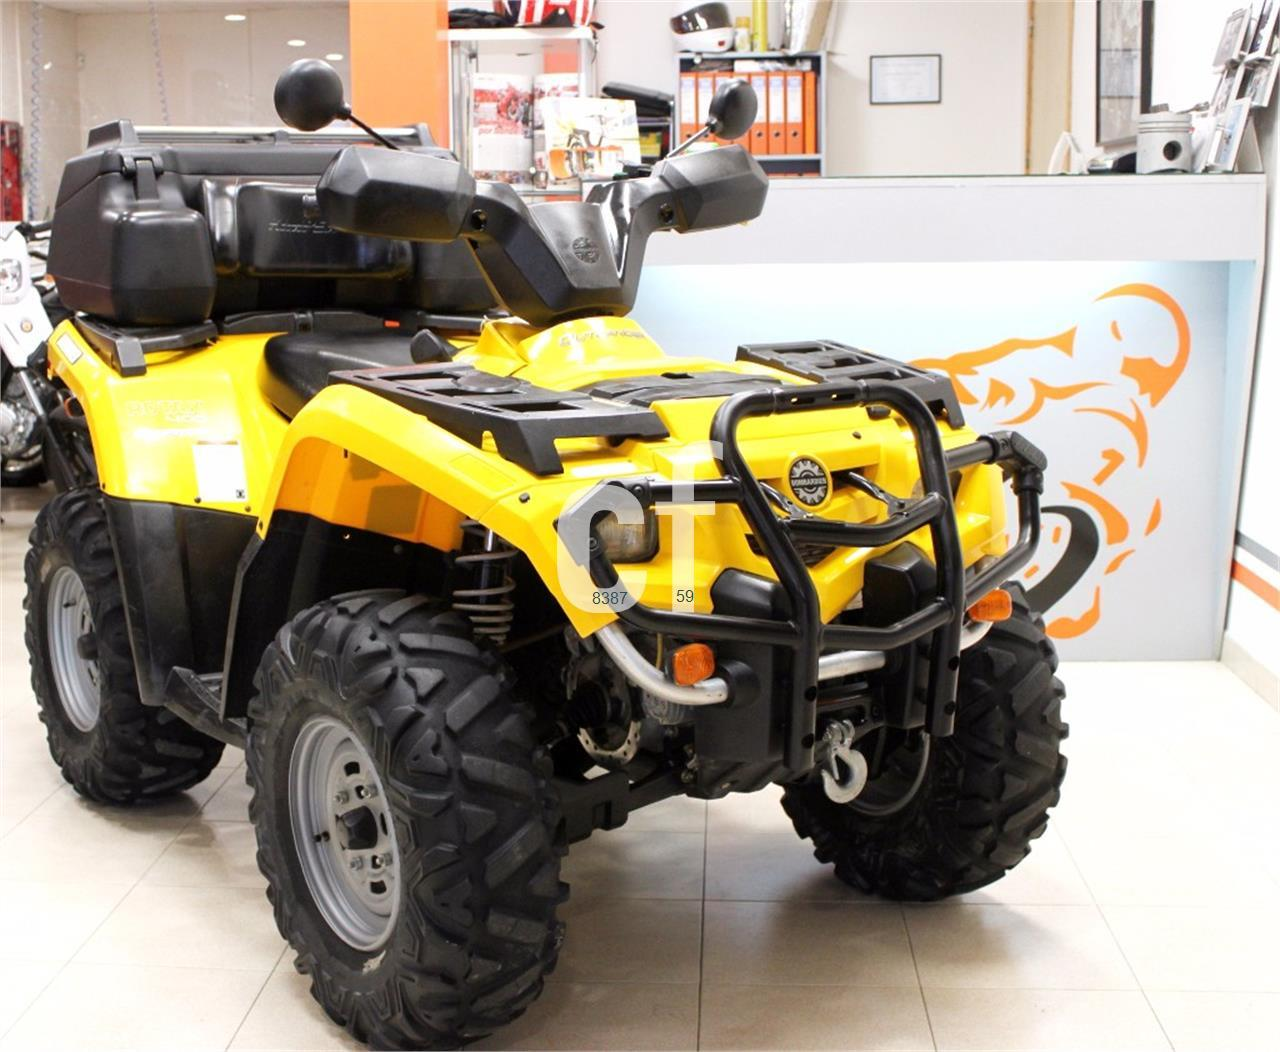 CAN-AM OUTLANDER 400 4X4